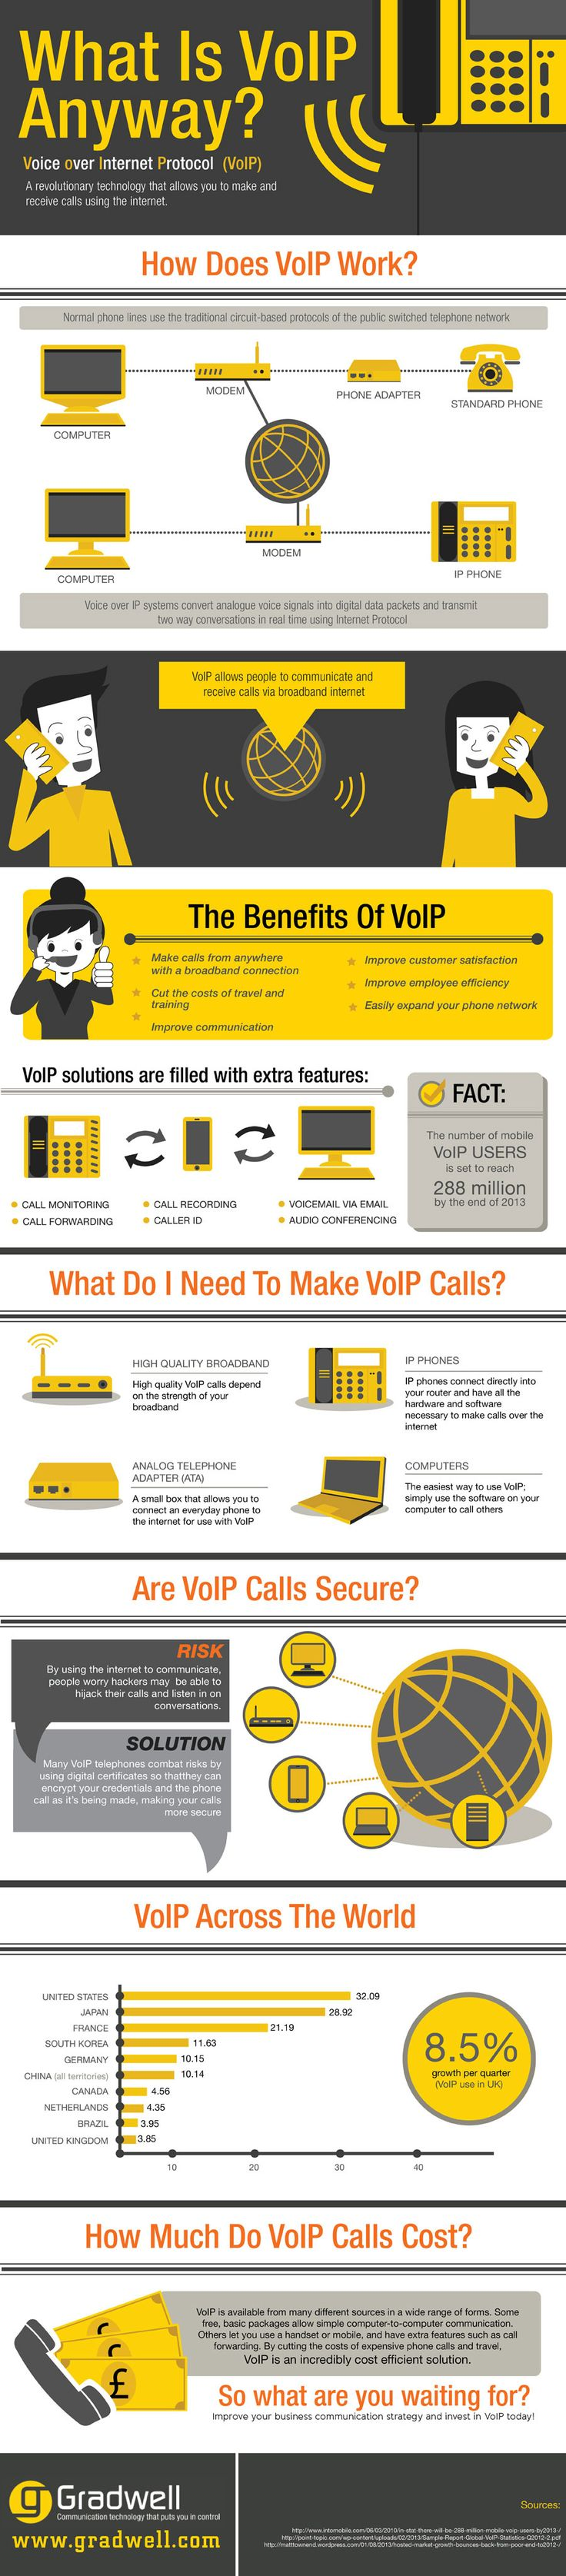 What Is VoIP Anyway?